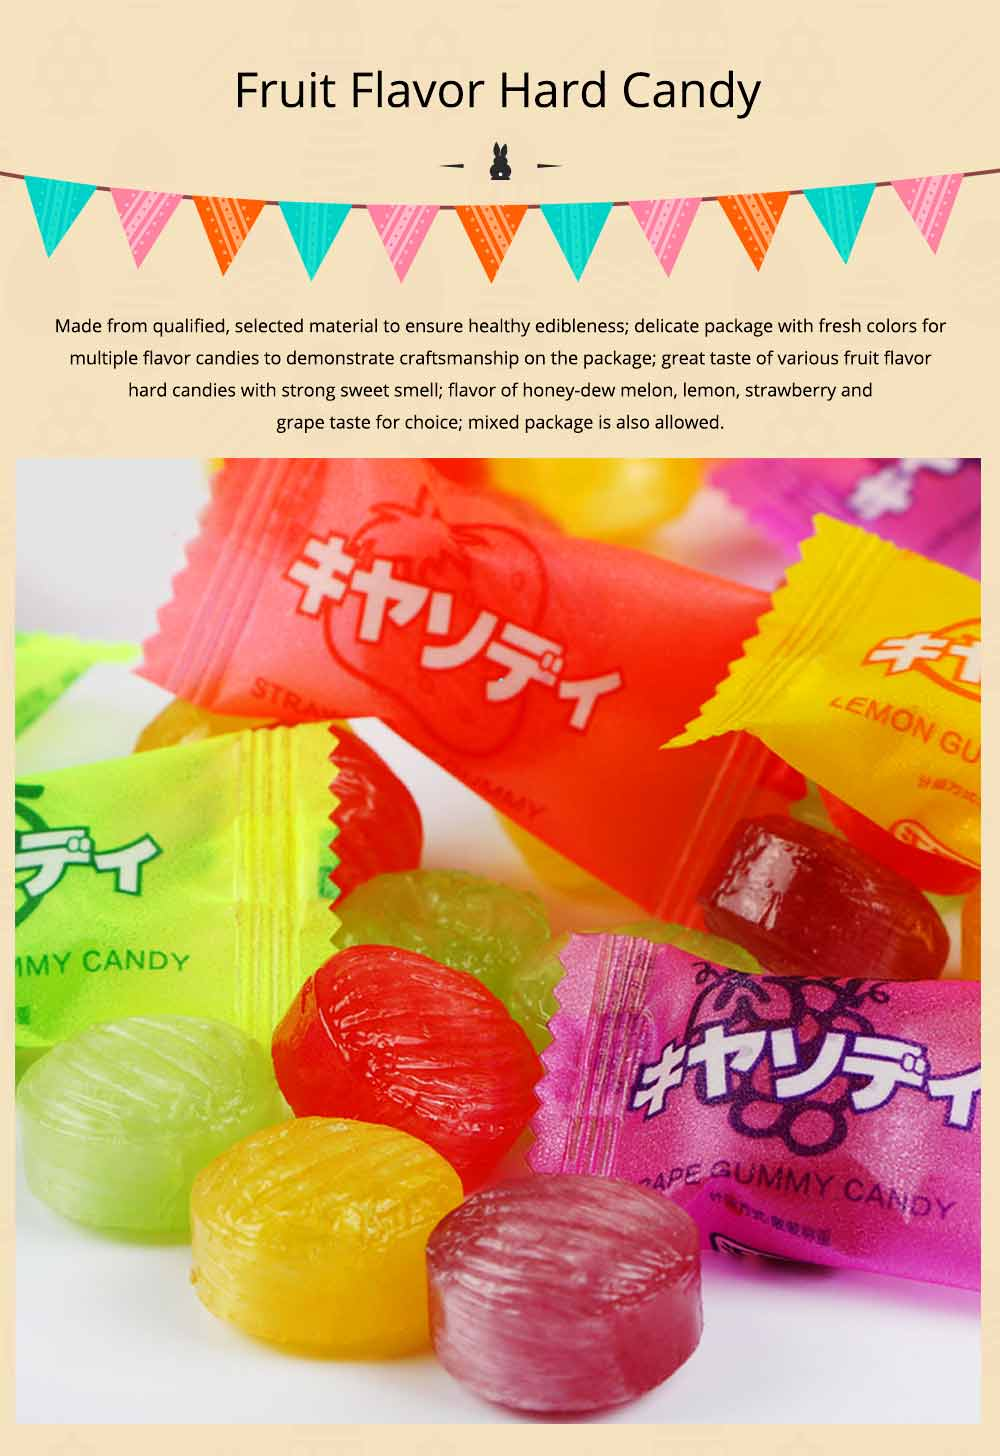 Fruit Flavor Hard Candy for Wedding Snacks, Mixed Package Multiple Flavor Bulk Package Hard Candies, Grape Lemon Flavor 0